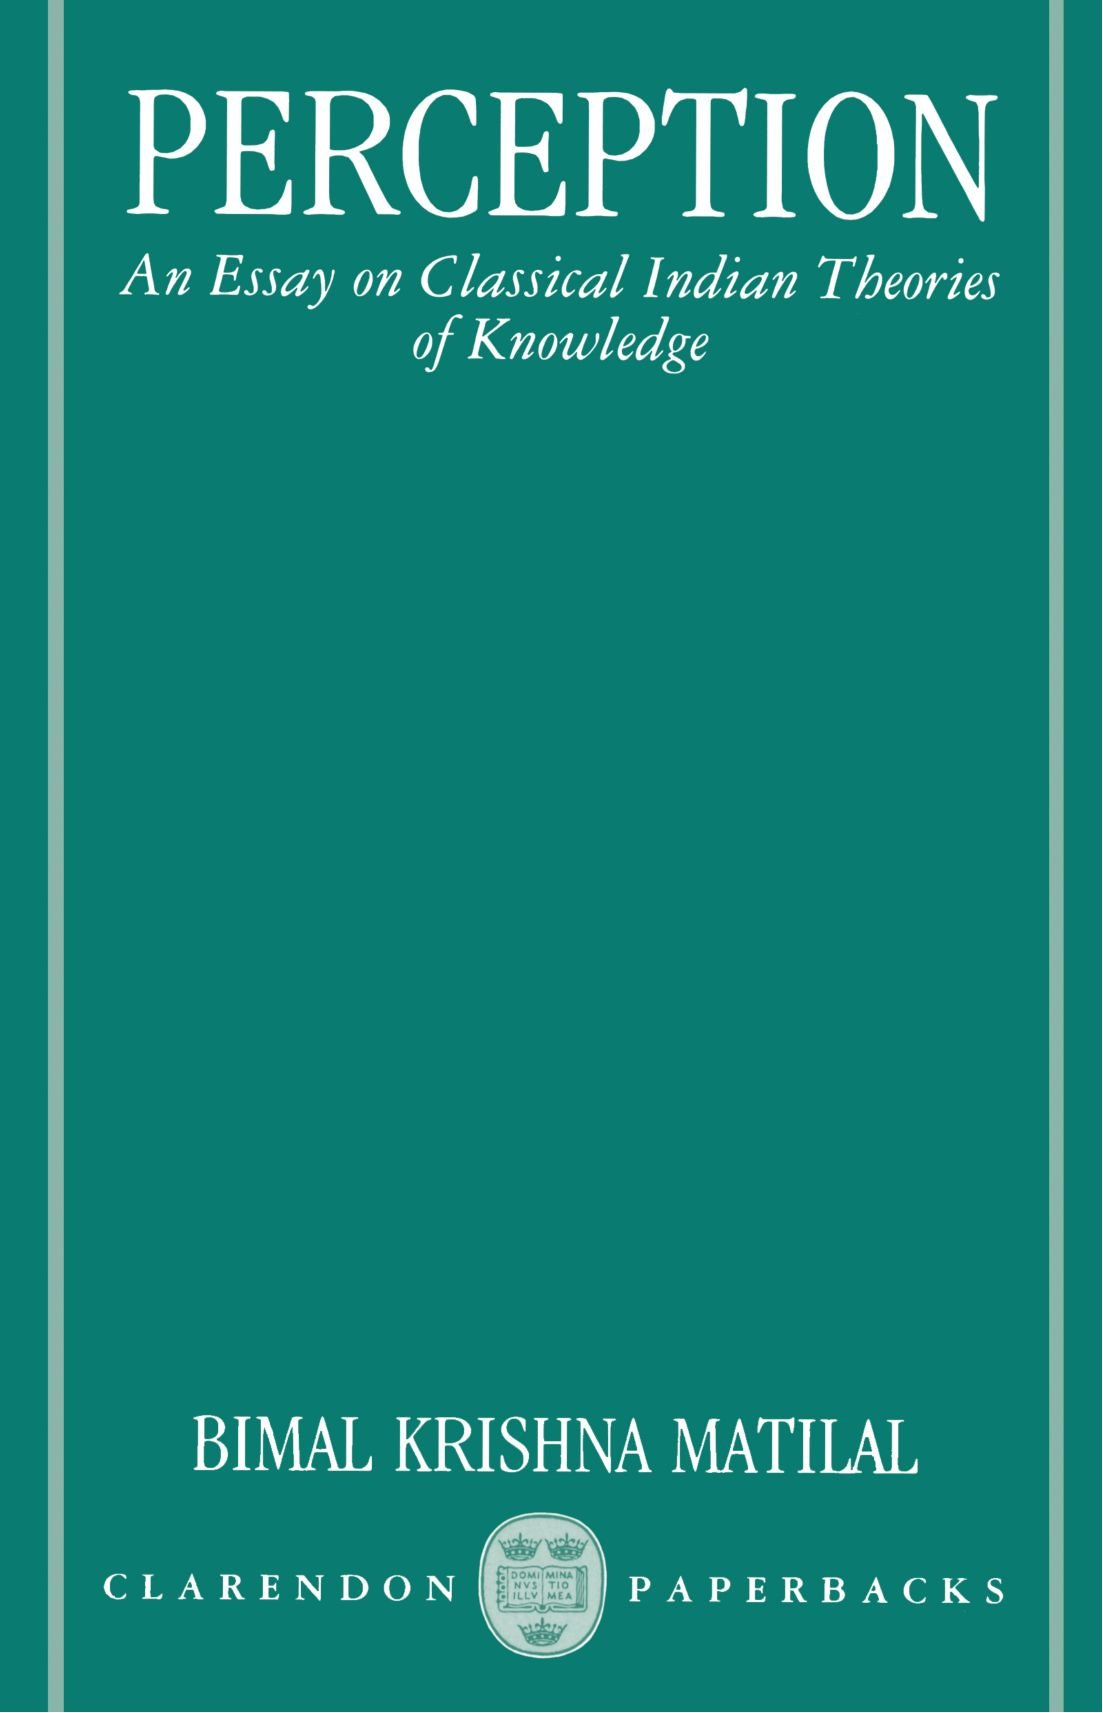 buy perception an essay on classical n theories of knowledge buy perception an essay on classical n theories of knowledge clarendon paperbacks book online at low prices in perception an essay on